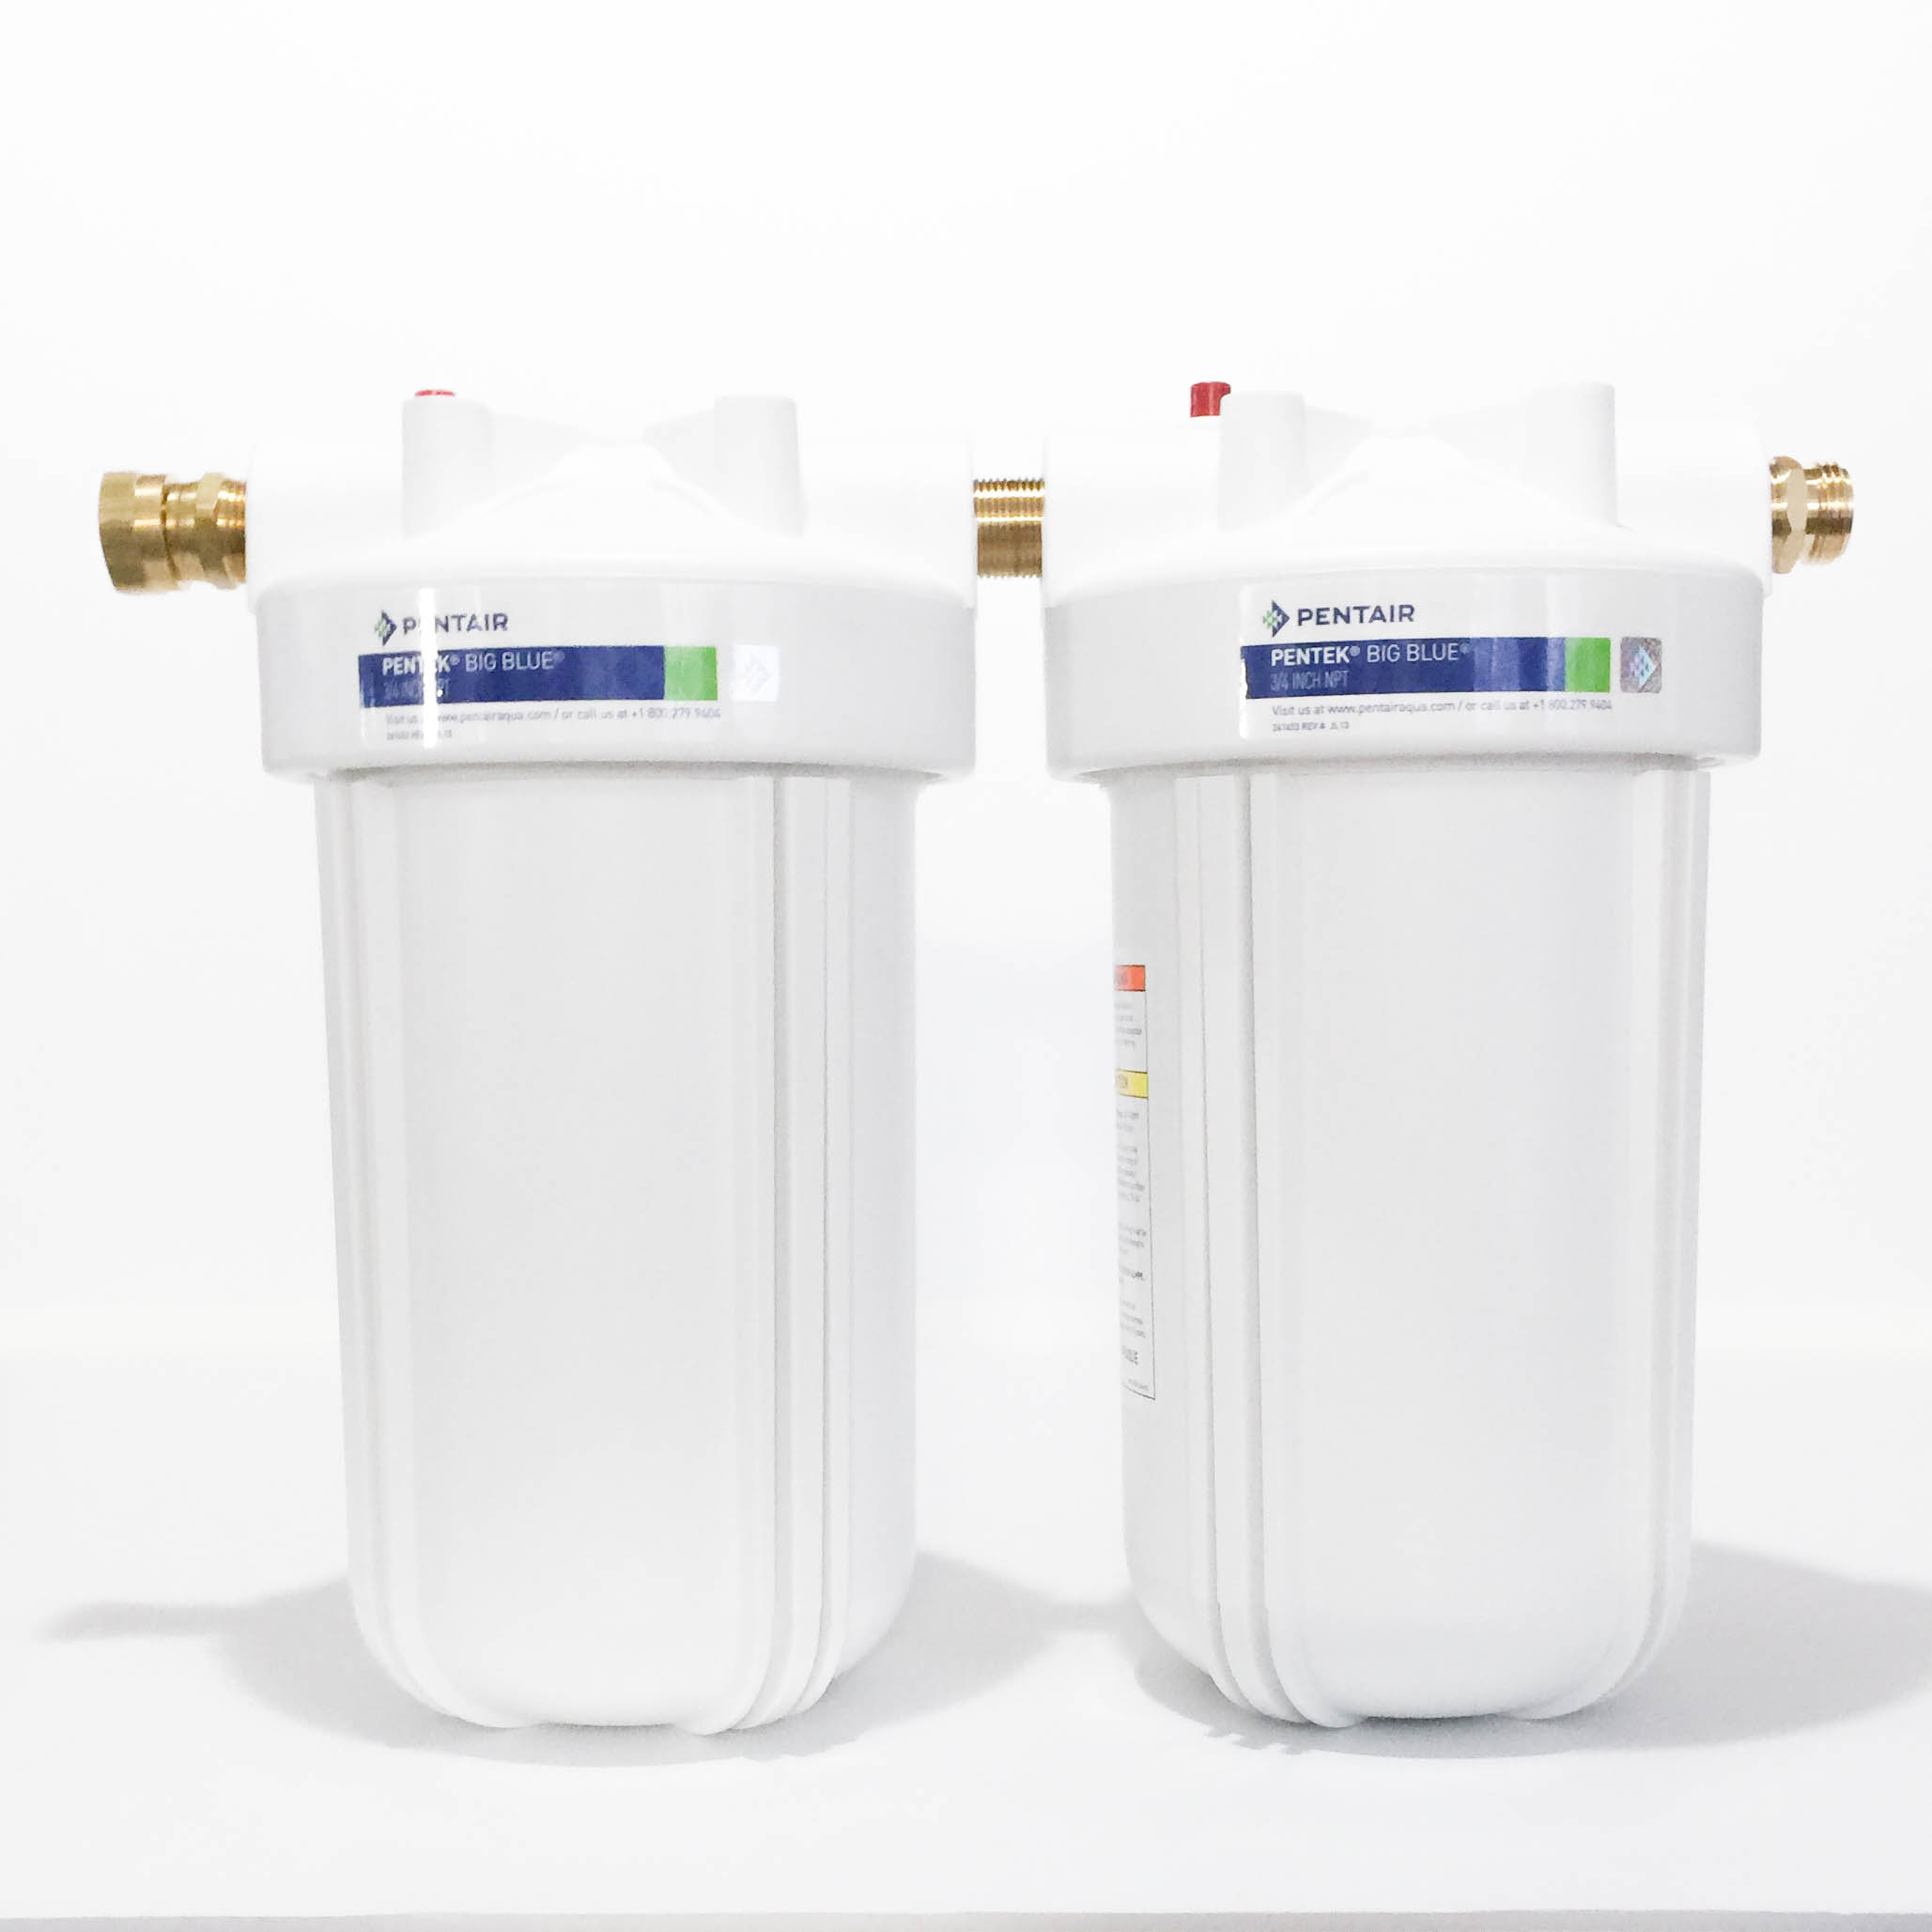 Whole Coach Products And Systems Rv Water Filter Store